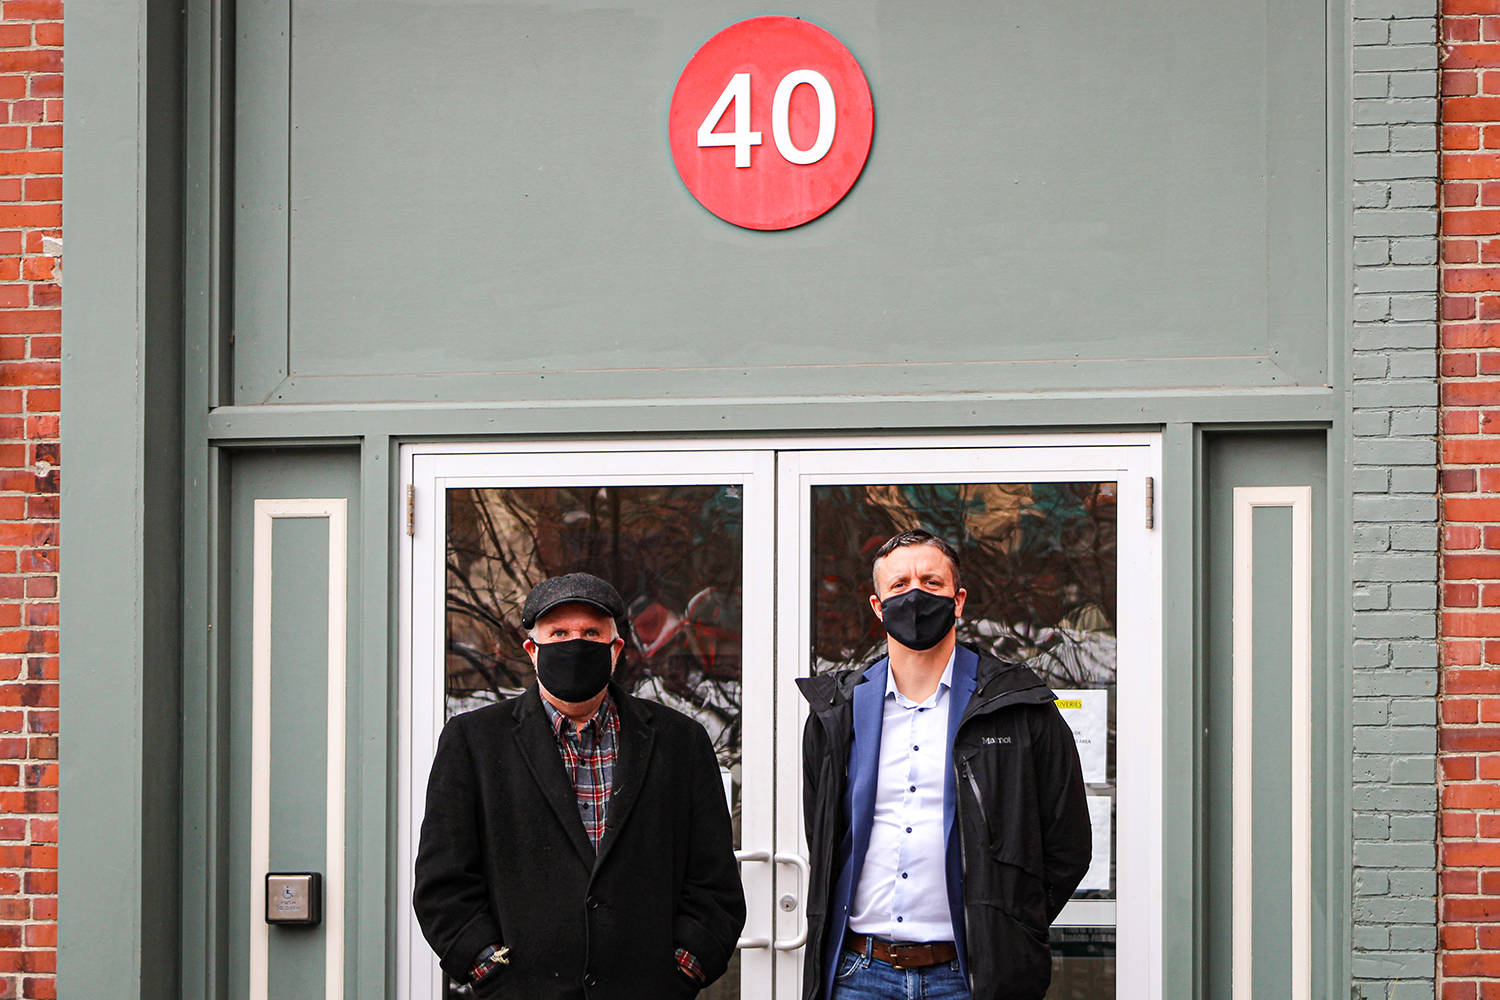 Lee Umphrey (left) and Philip Henry, pictured on Dec. 22, the day Henry purchased 40 Harlow St. from Eastern Maine Development Corporation. Credit: Courtesy of EMDC